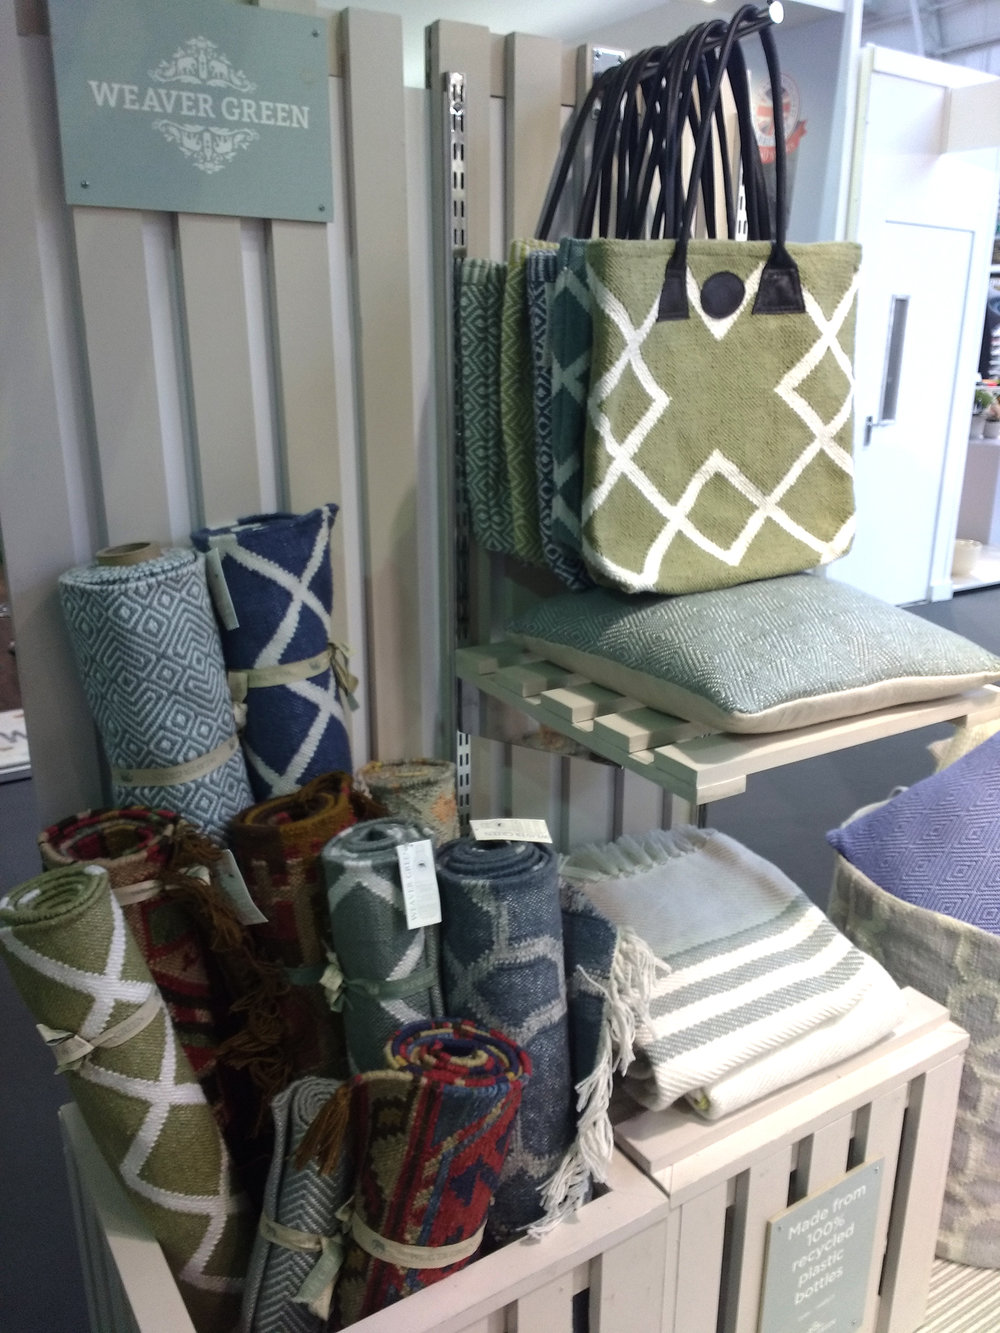 Weaver Green  Rugs ,  Bags  and  Blankets